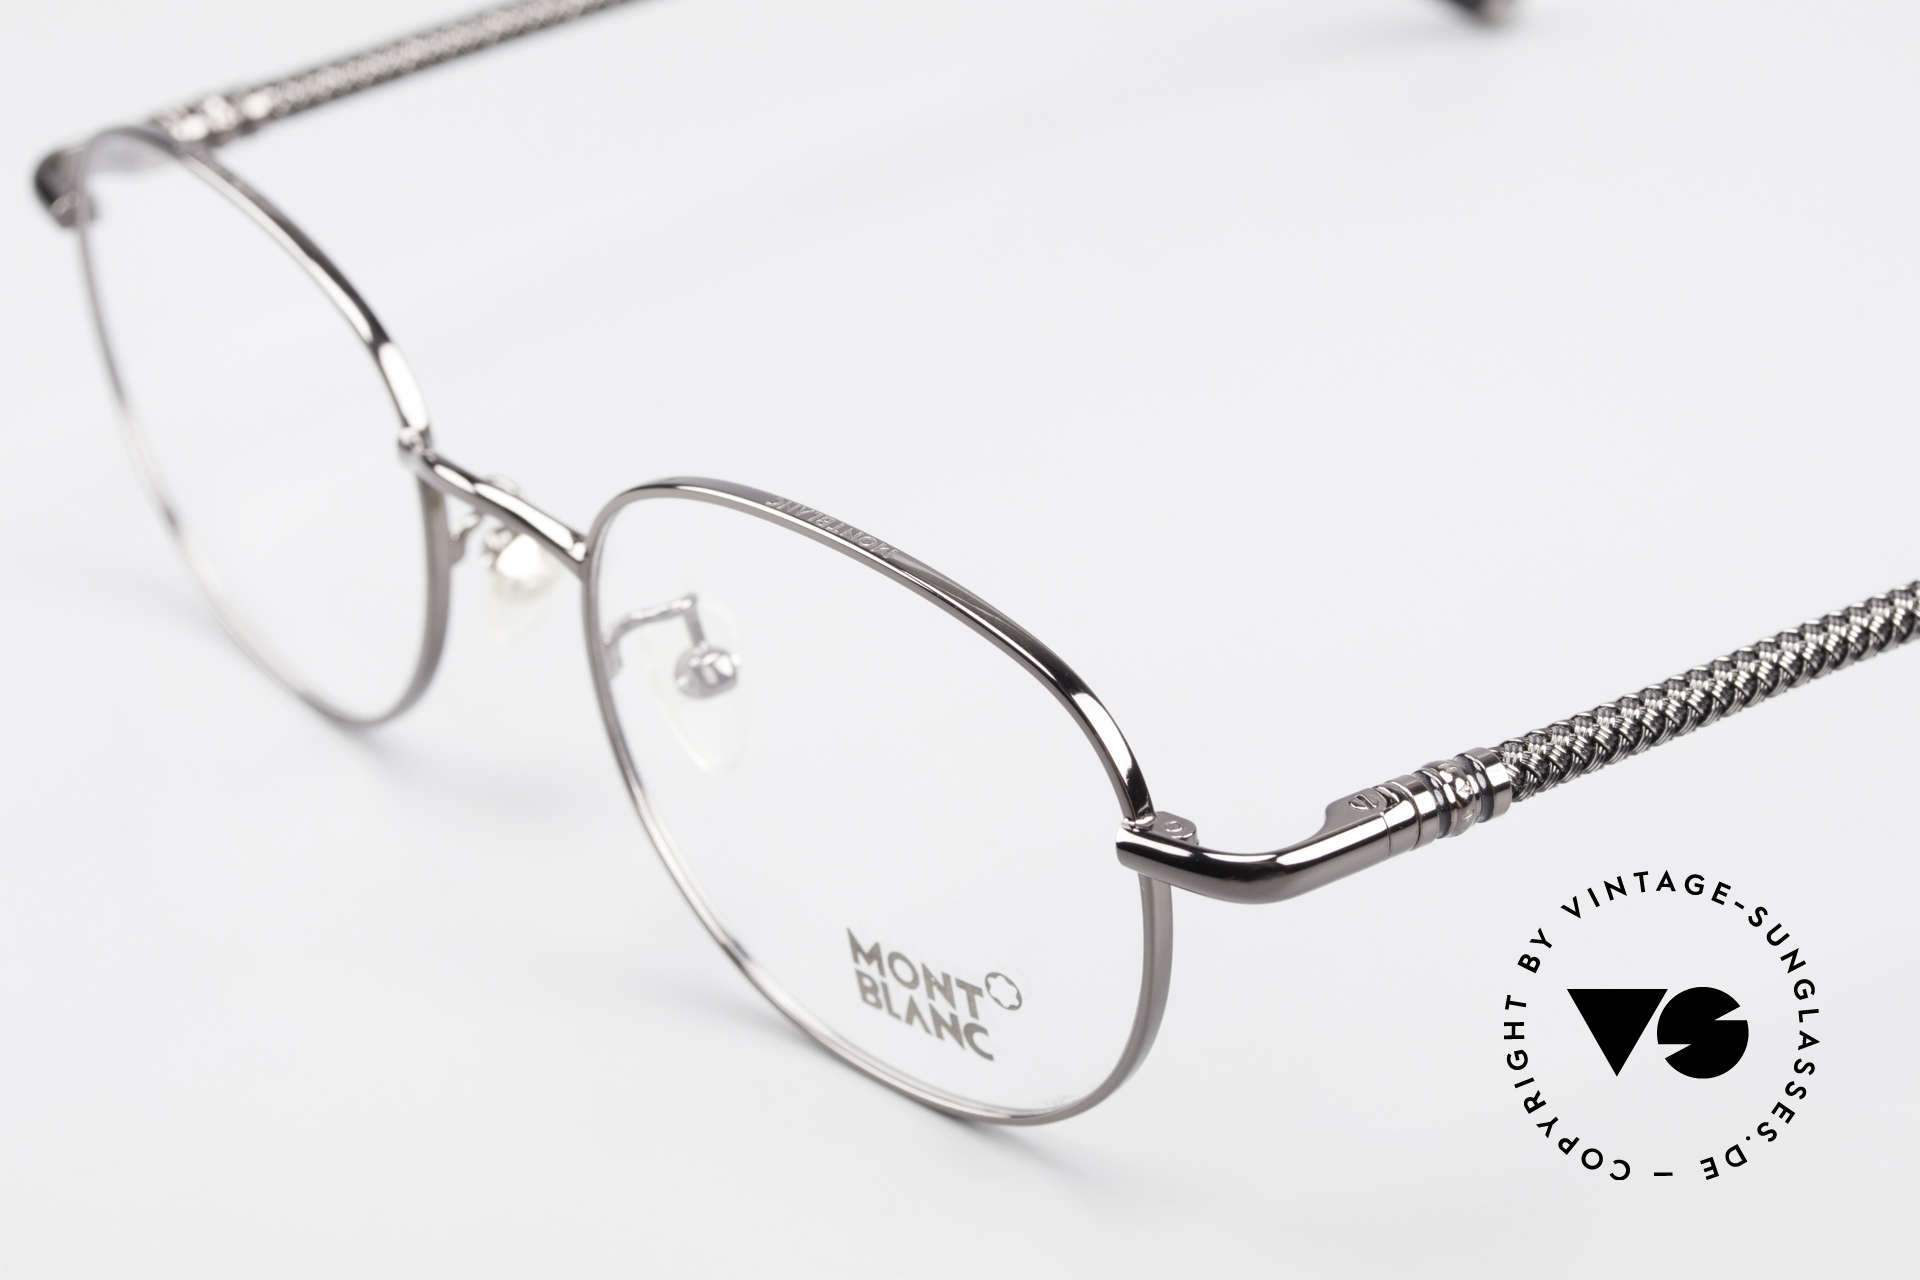 Montblanc MB392 Luxury Panto Frame Gunmetal, NO RETRO glasses, but an old ORIGINAL from 1999, Made for Men and Women